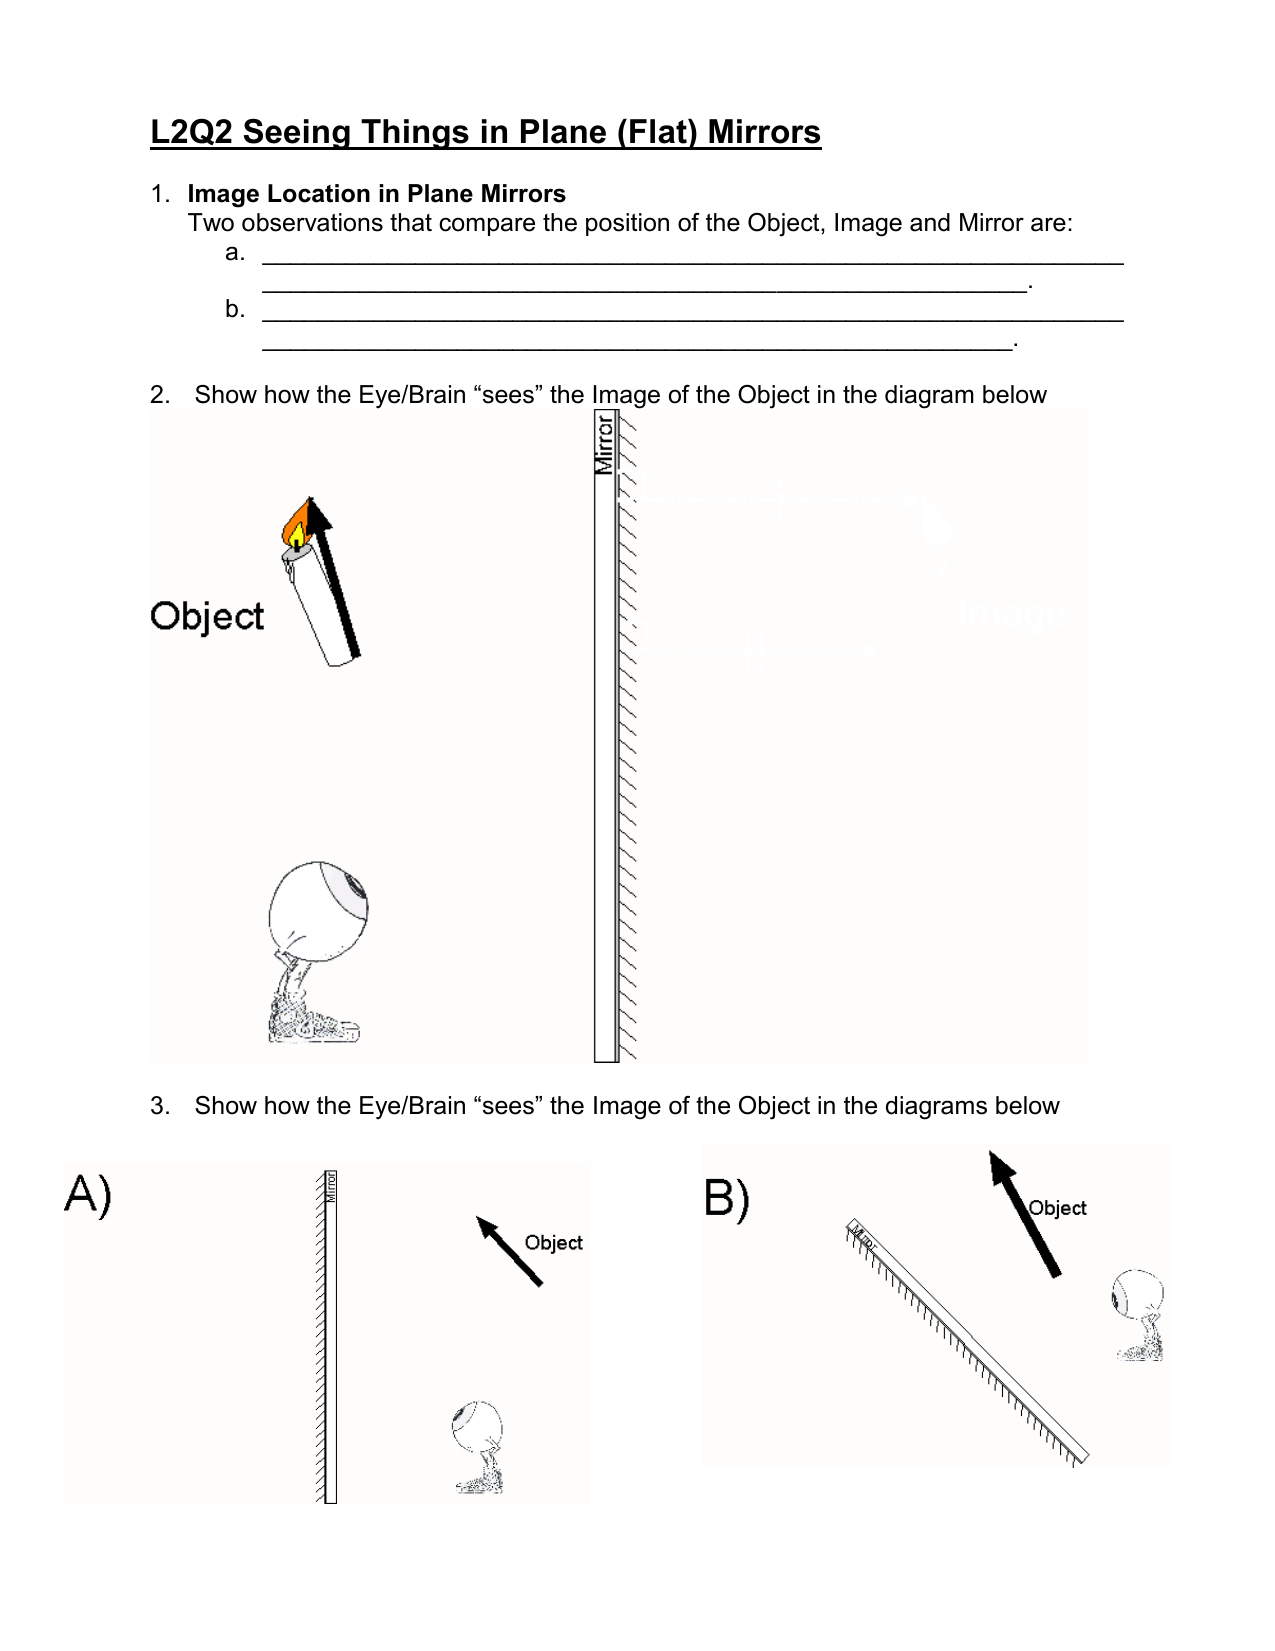 worksheet Images In Plane Mirrors Worksheet seeing things in plane flat mirrors optics lesson 2